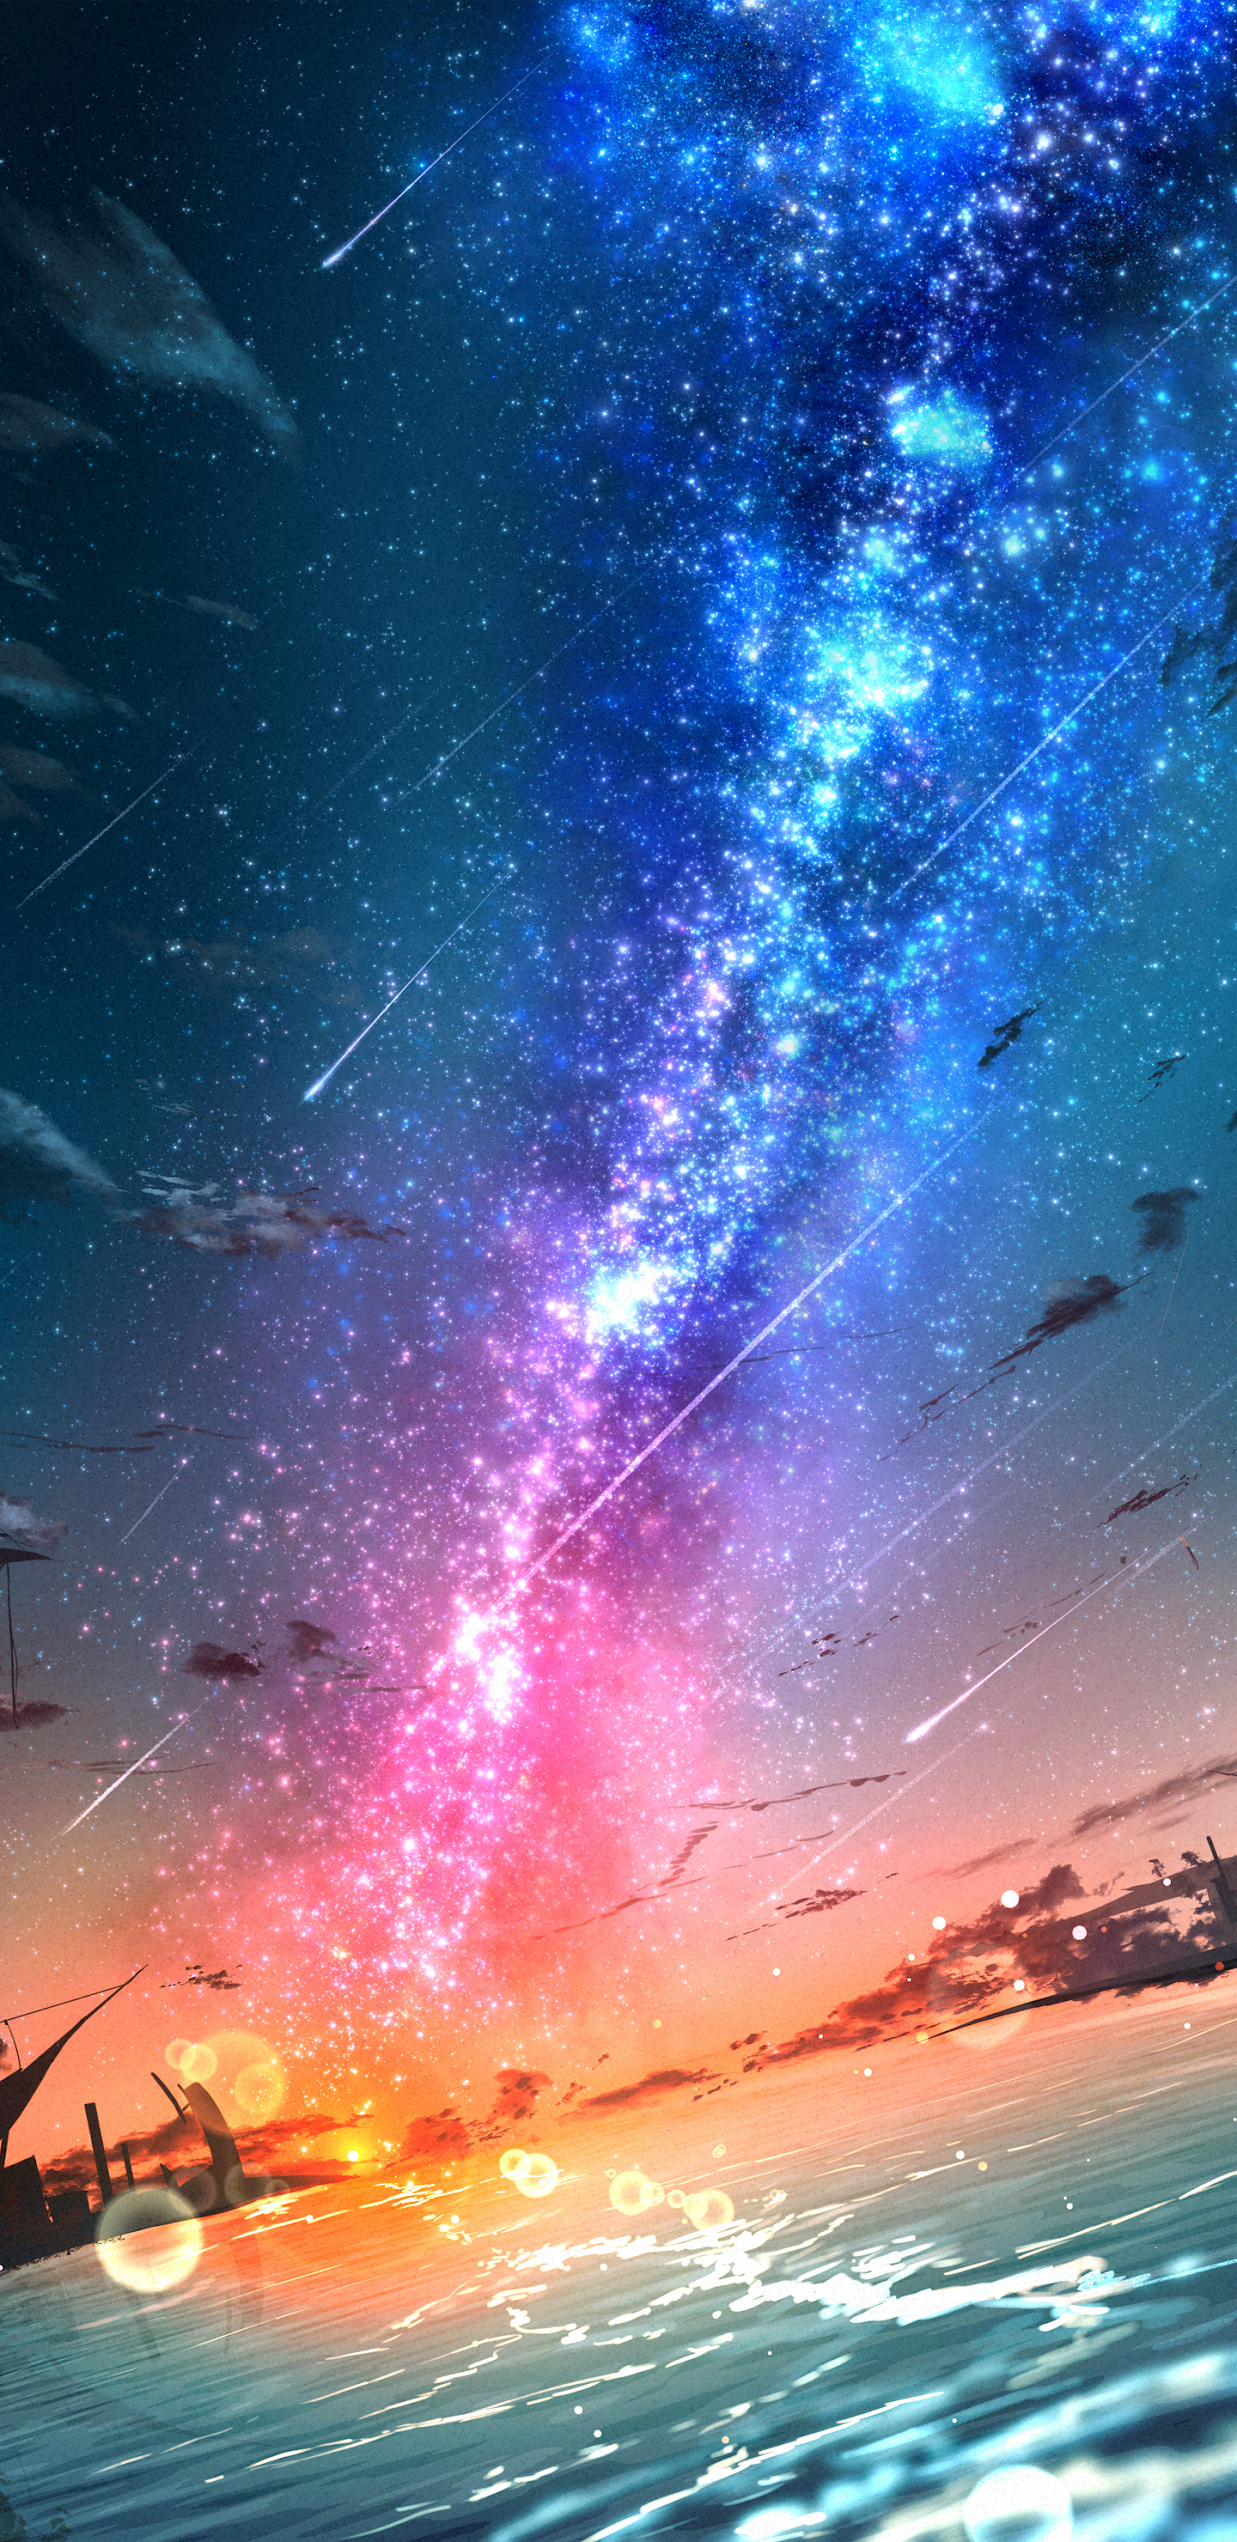 Colorful milky way in the sunset